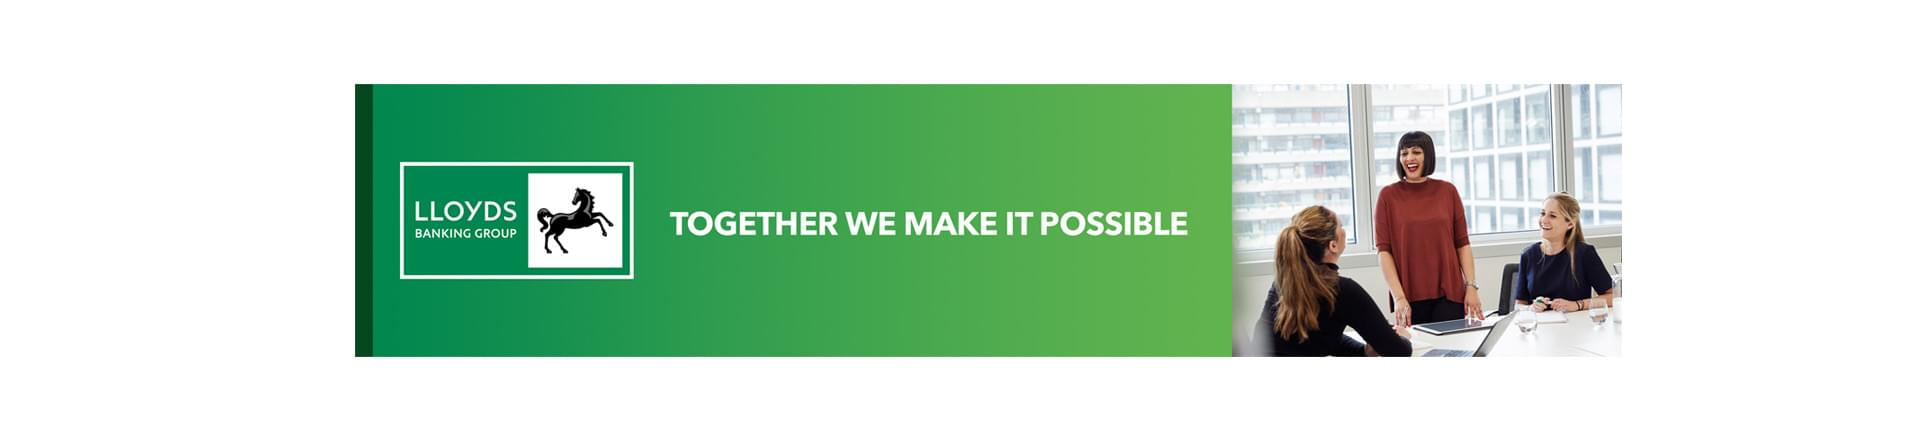 Words together we make it possible on green background